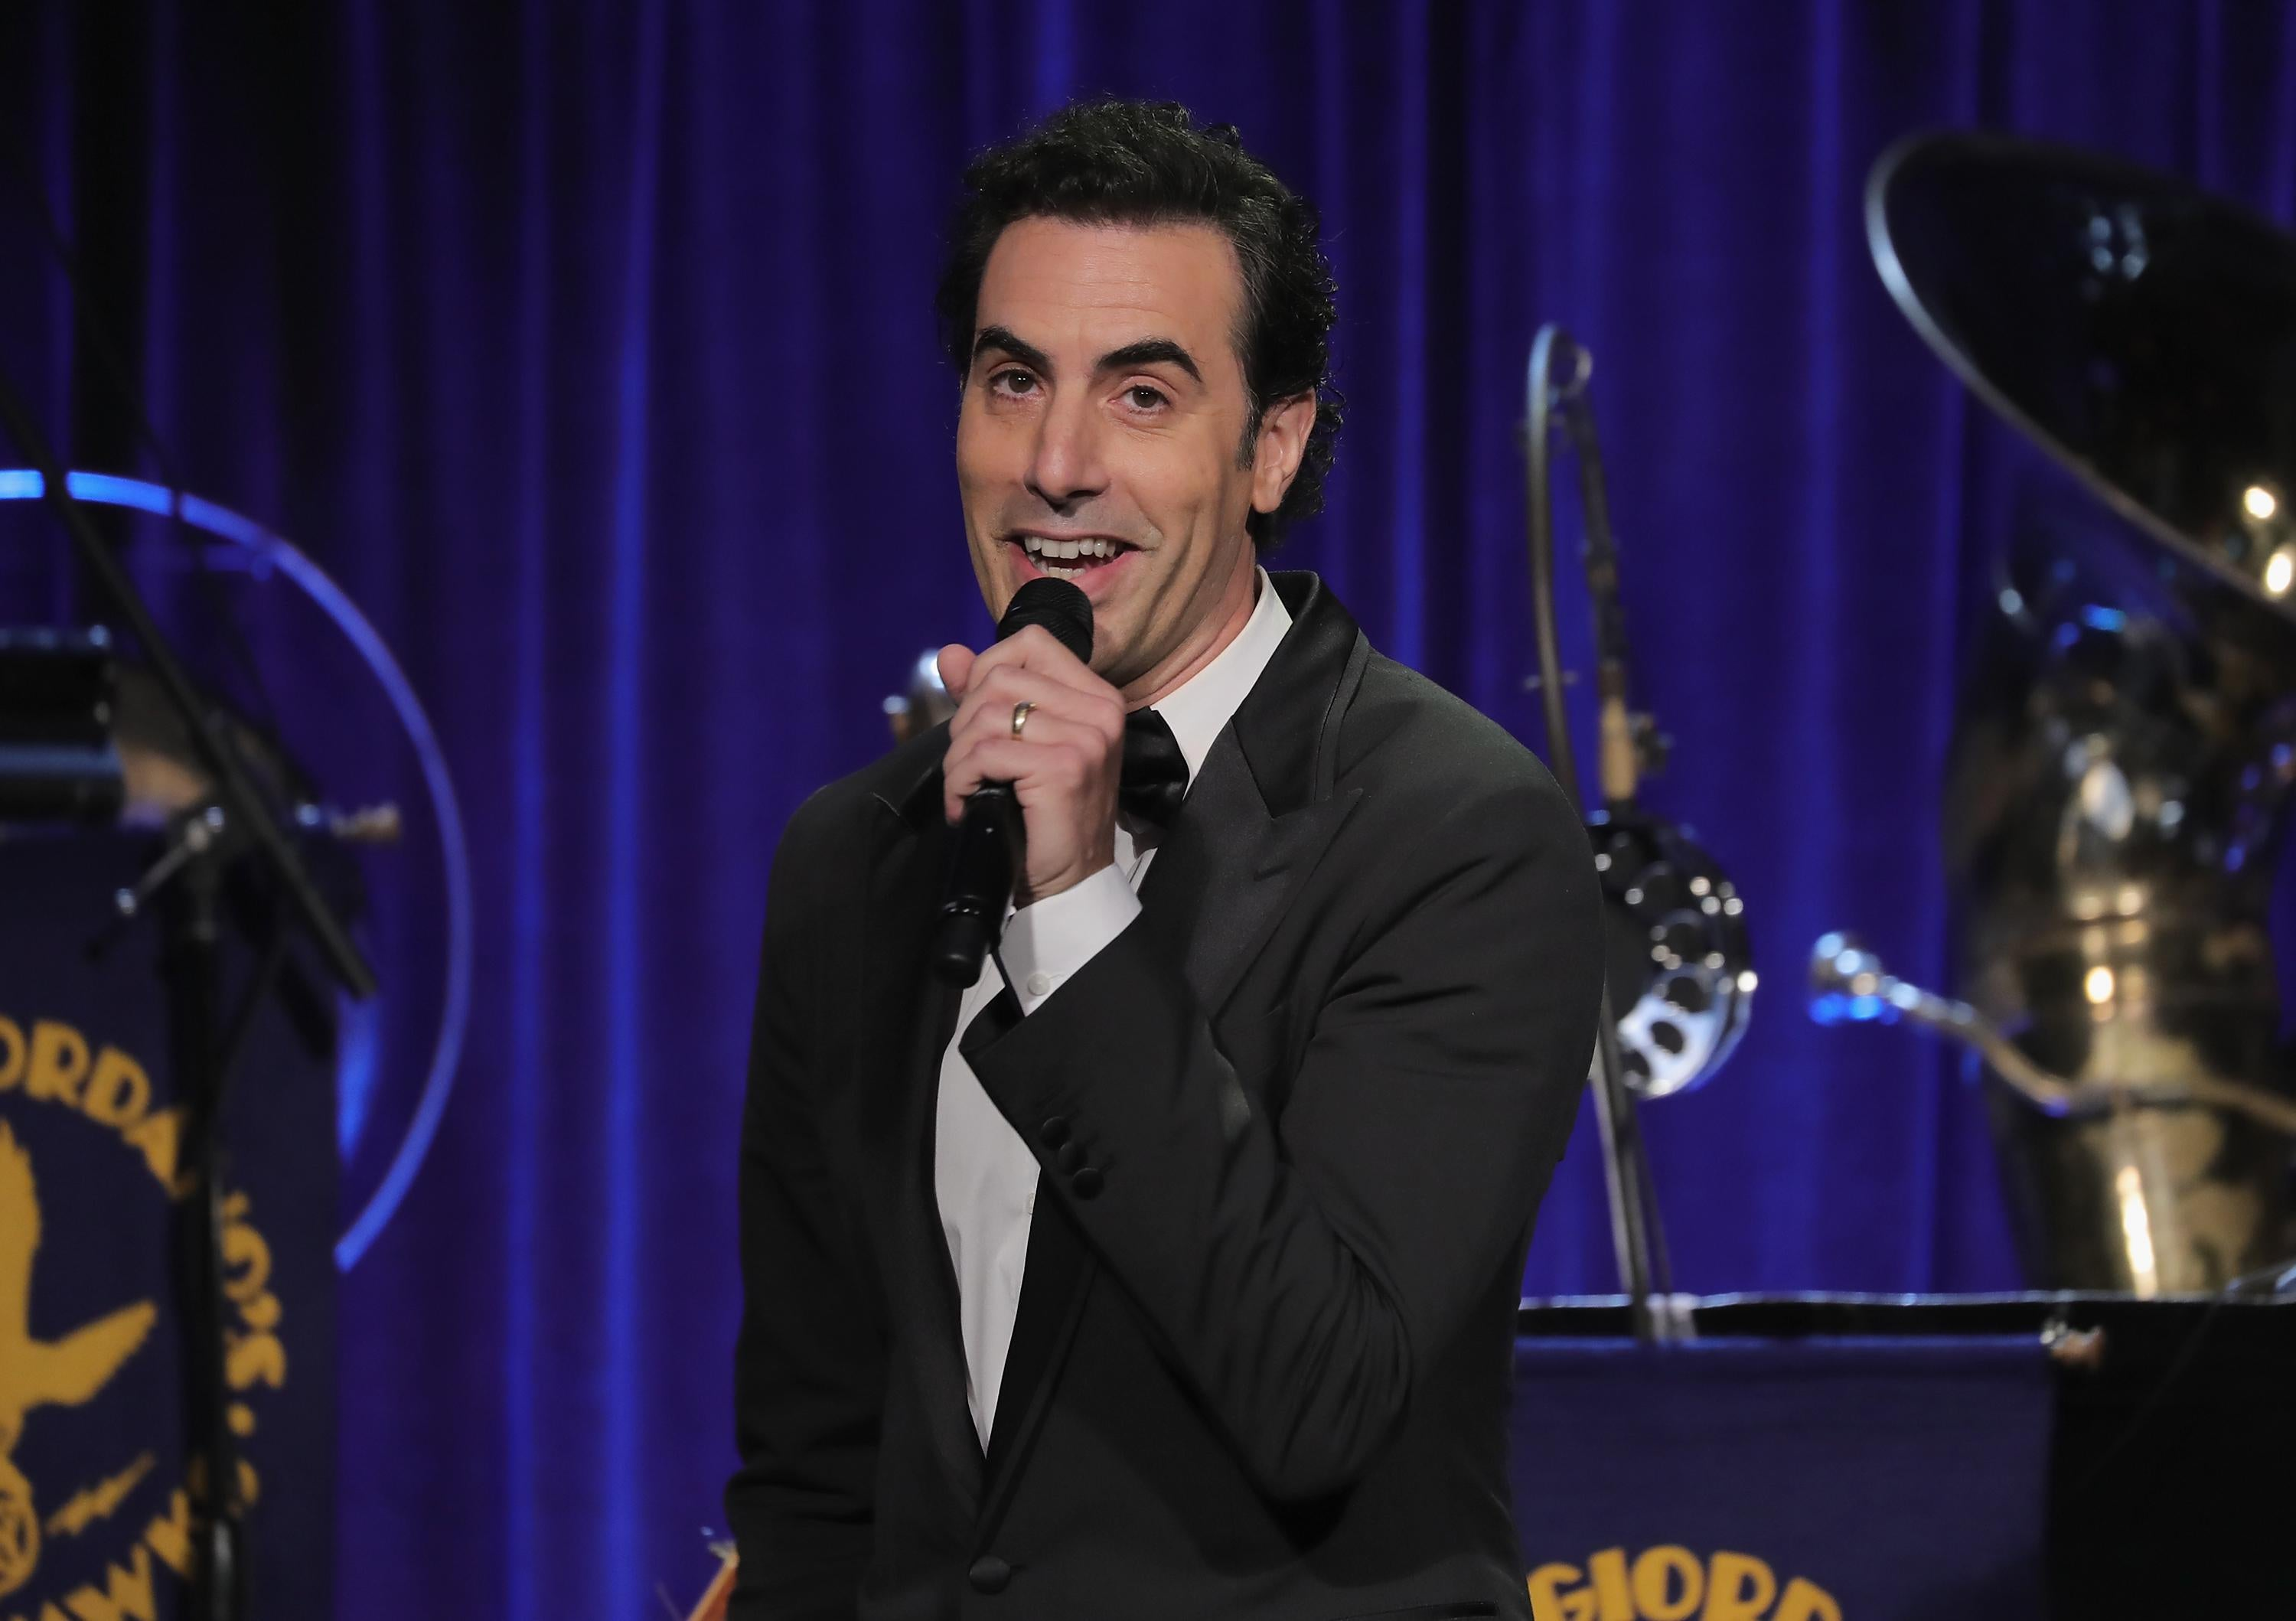 Sacha Baron Cohen holds a microphone onstage at the Friars Club in New York City.